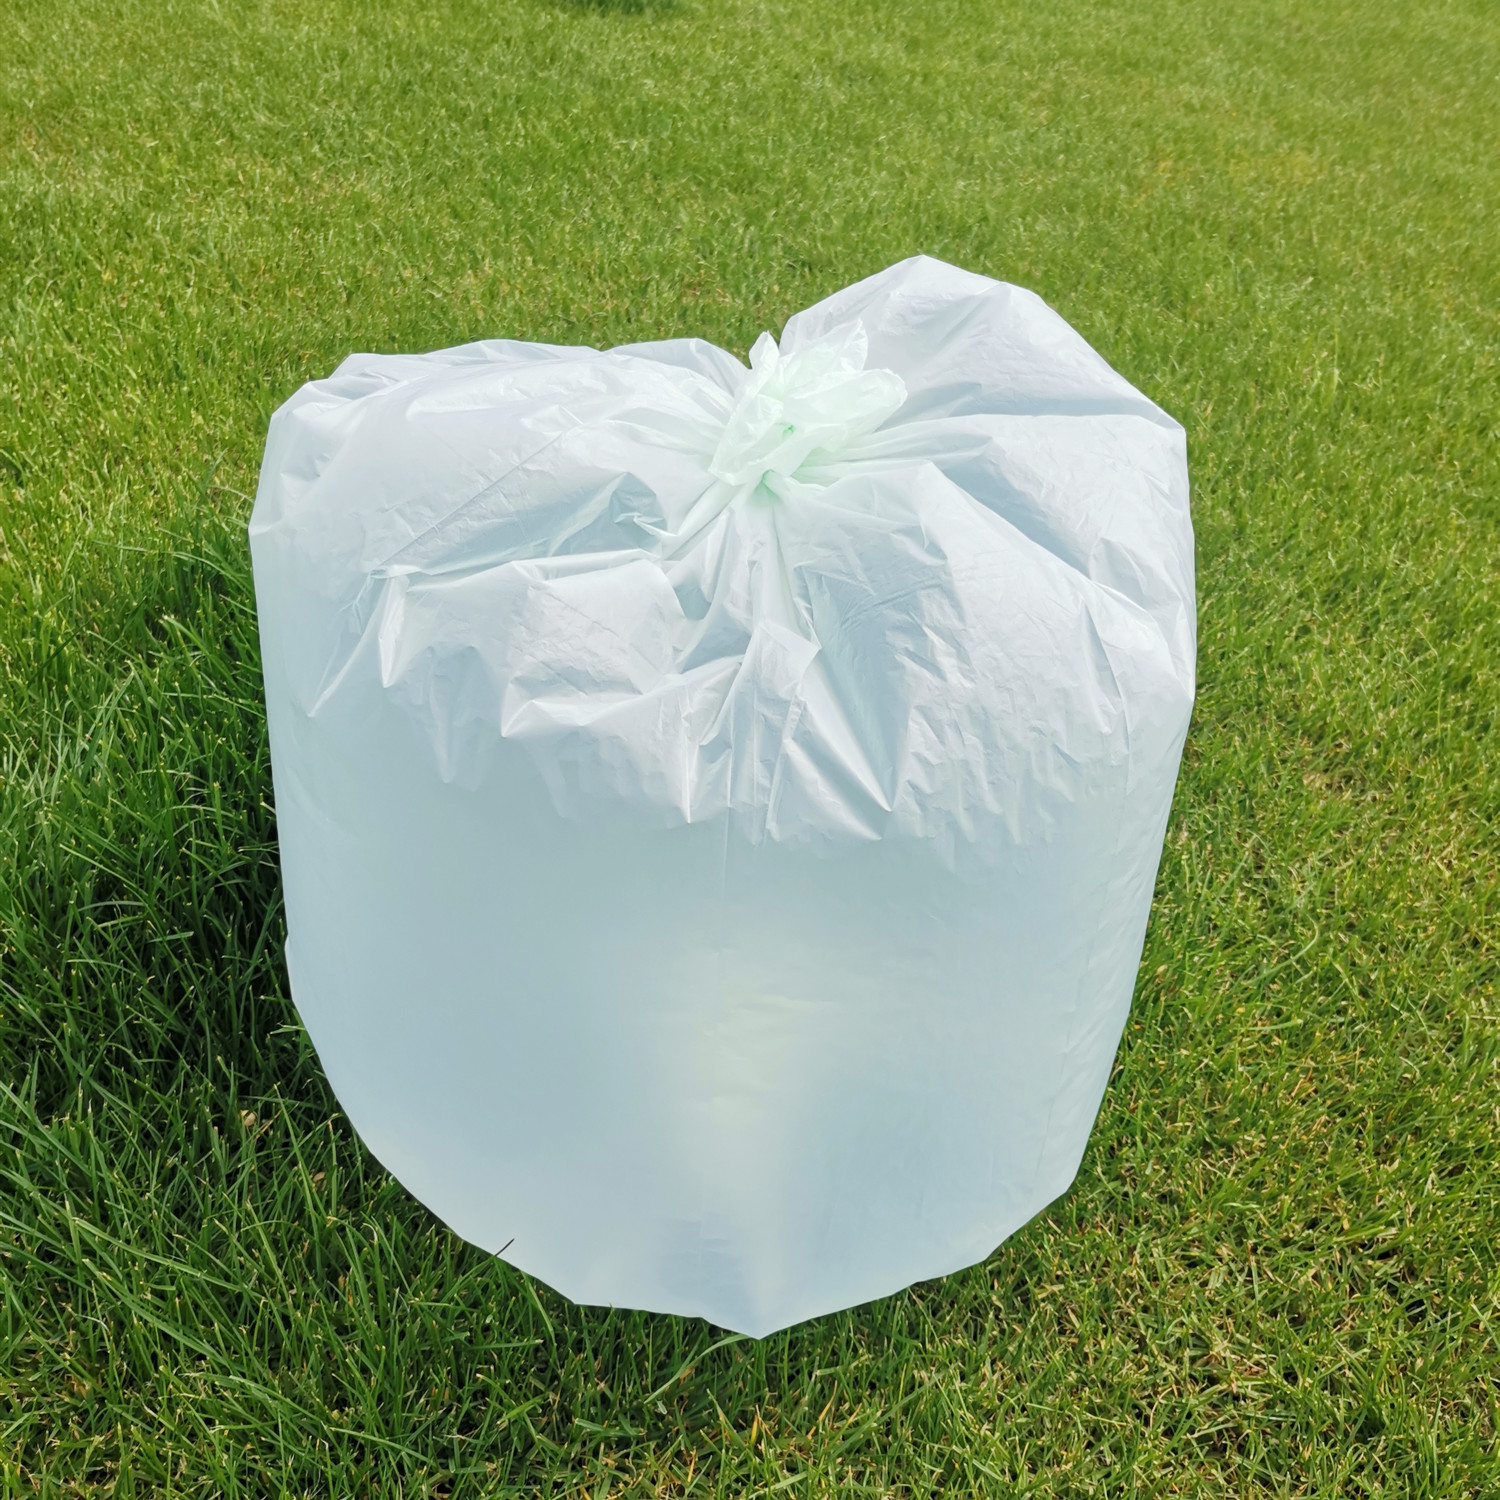 Non-toxic And Harmless Rubbish Bags